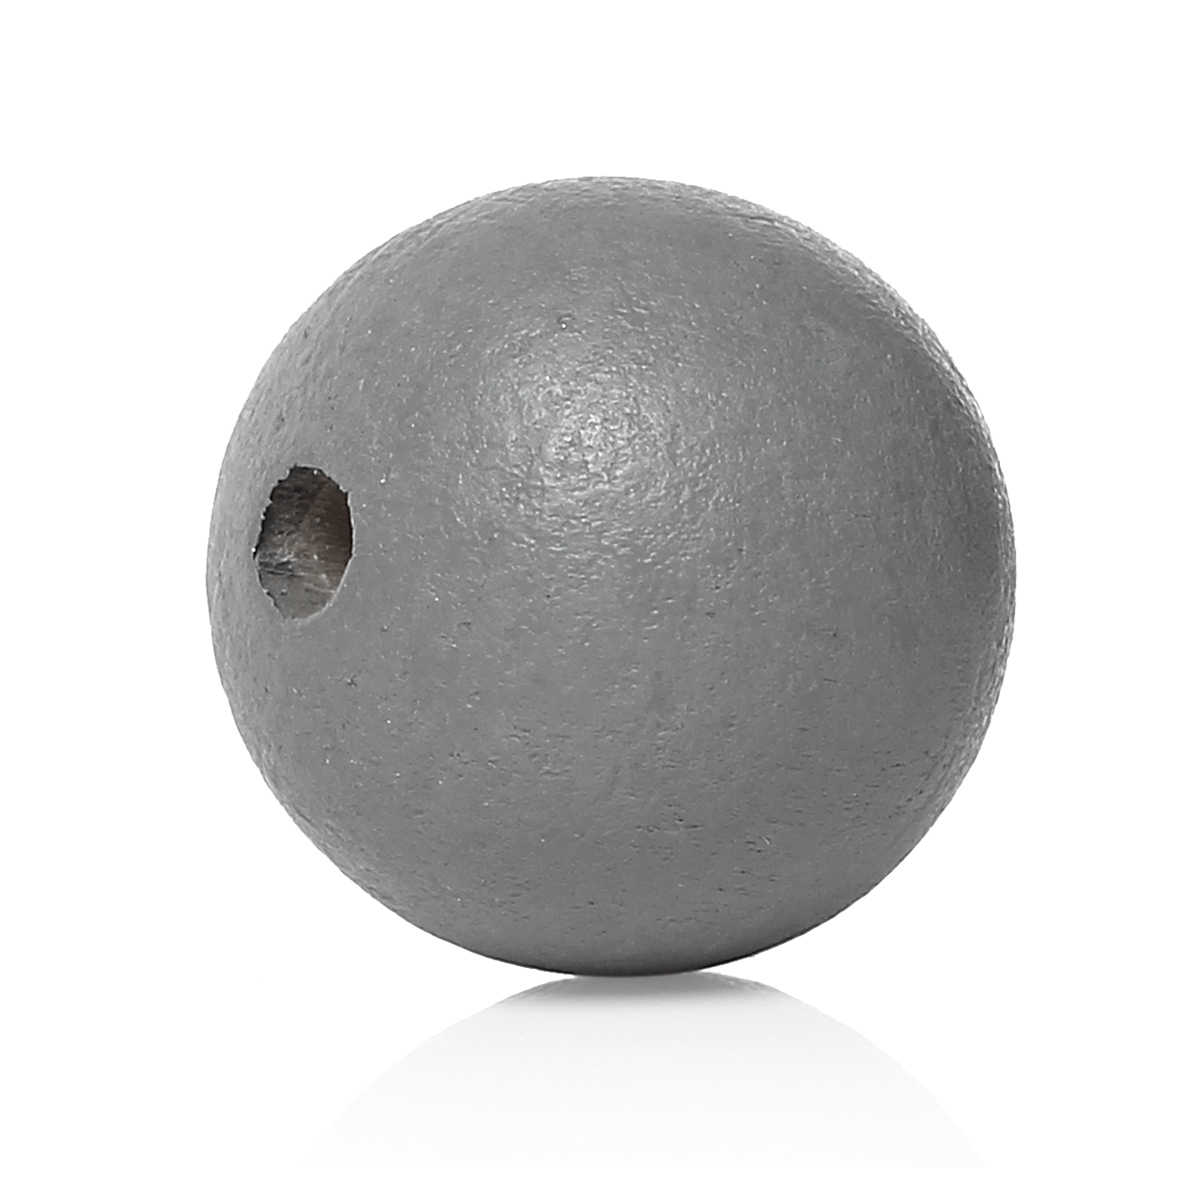 "8SEASONS Wood Spacer Beads Round Gray About 10mm( 3/8"") Dia, Hole: Approx 3mm( 1/8"") - 2.2mm( 1/8""), 300 PCs"